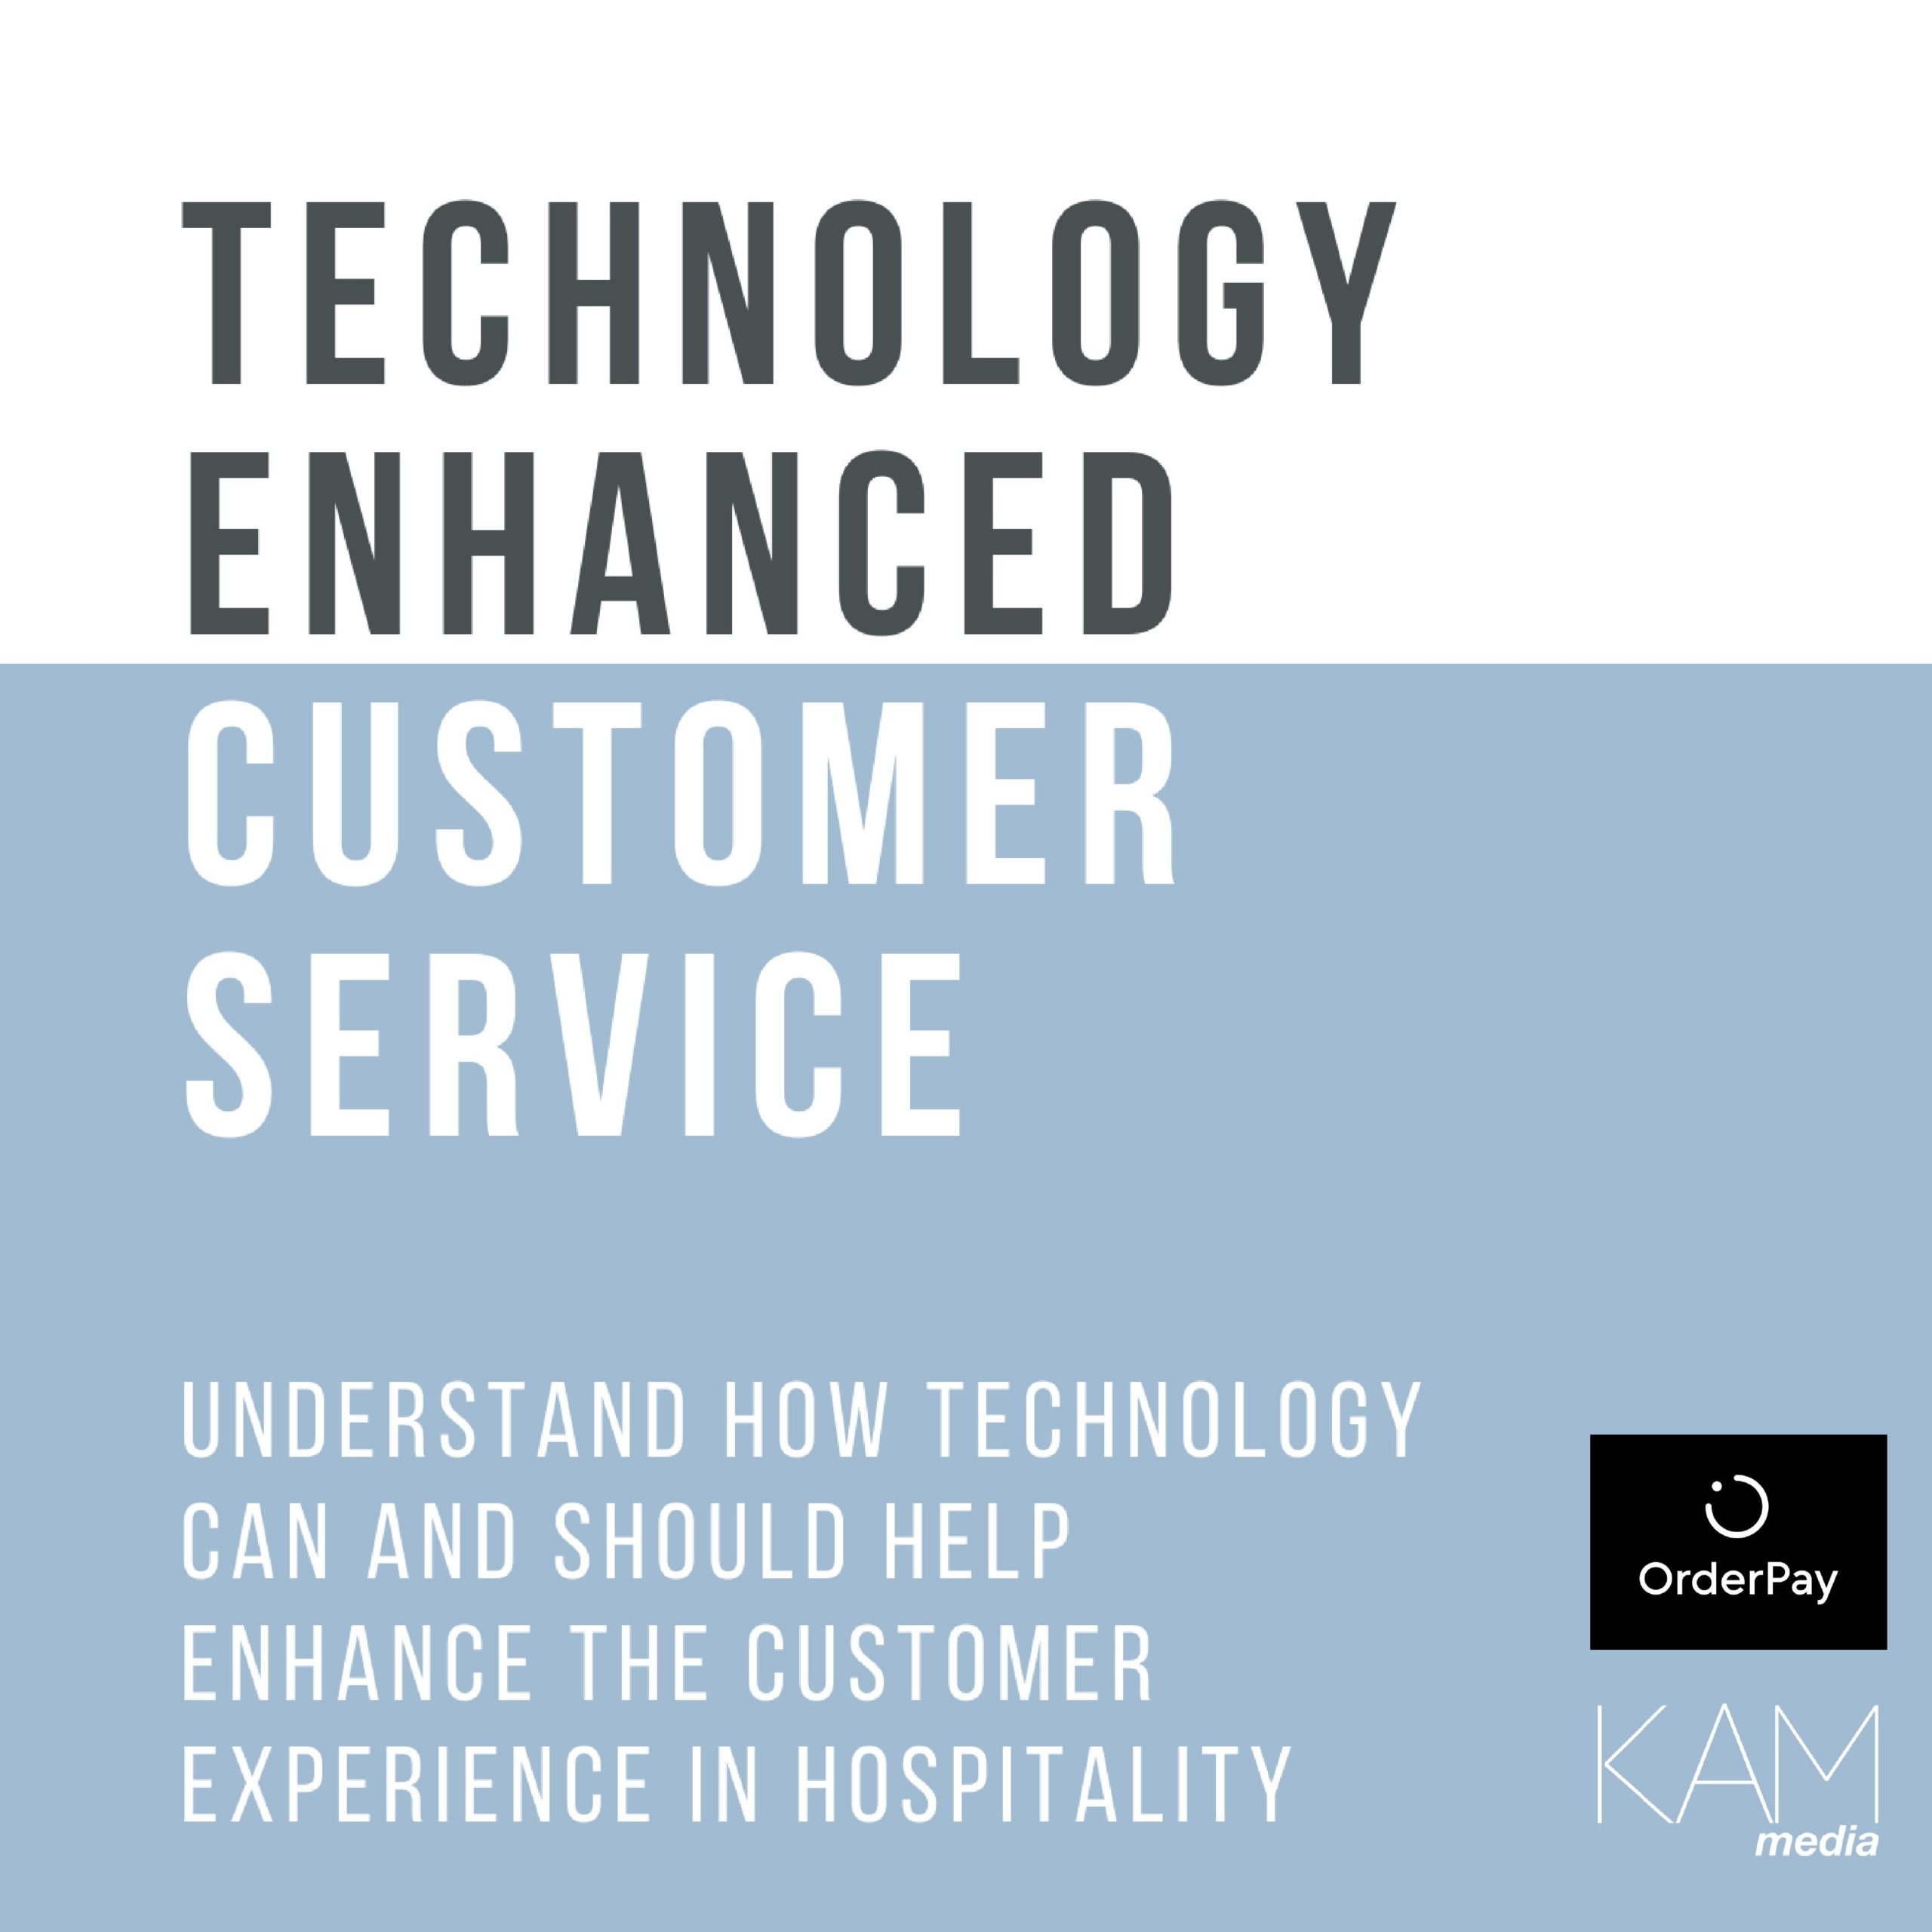 Technology Enhanced Customer Service